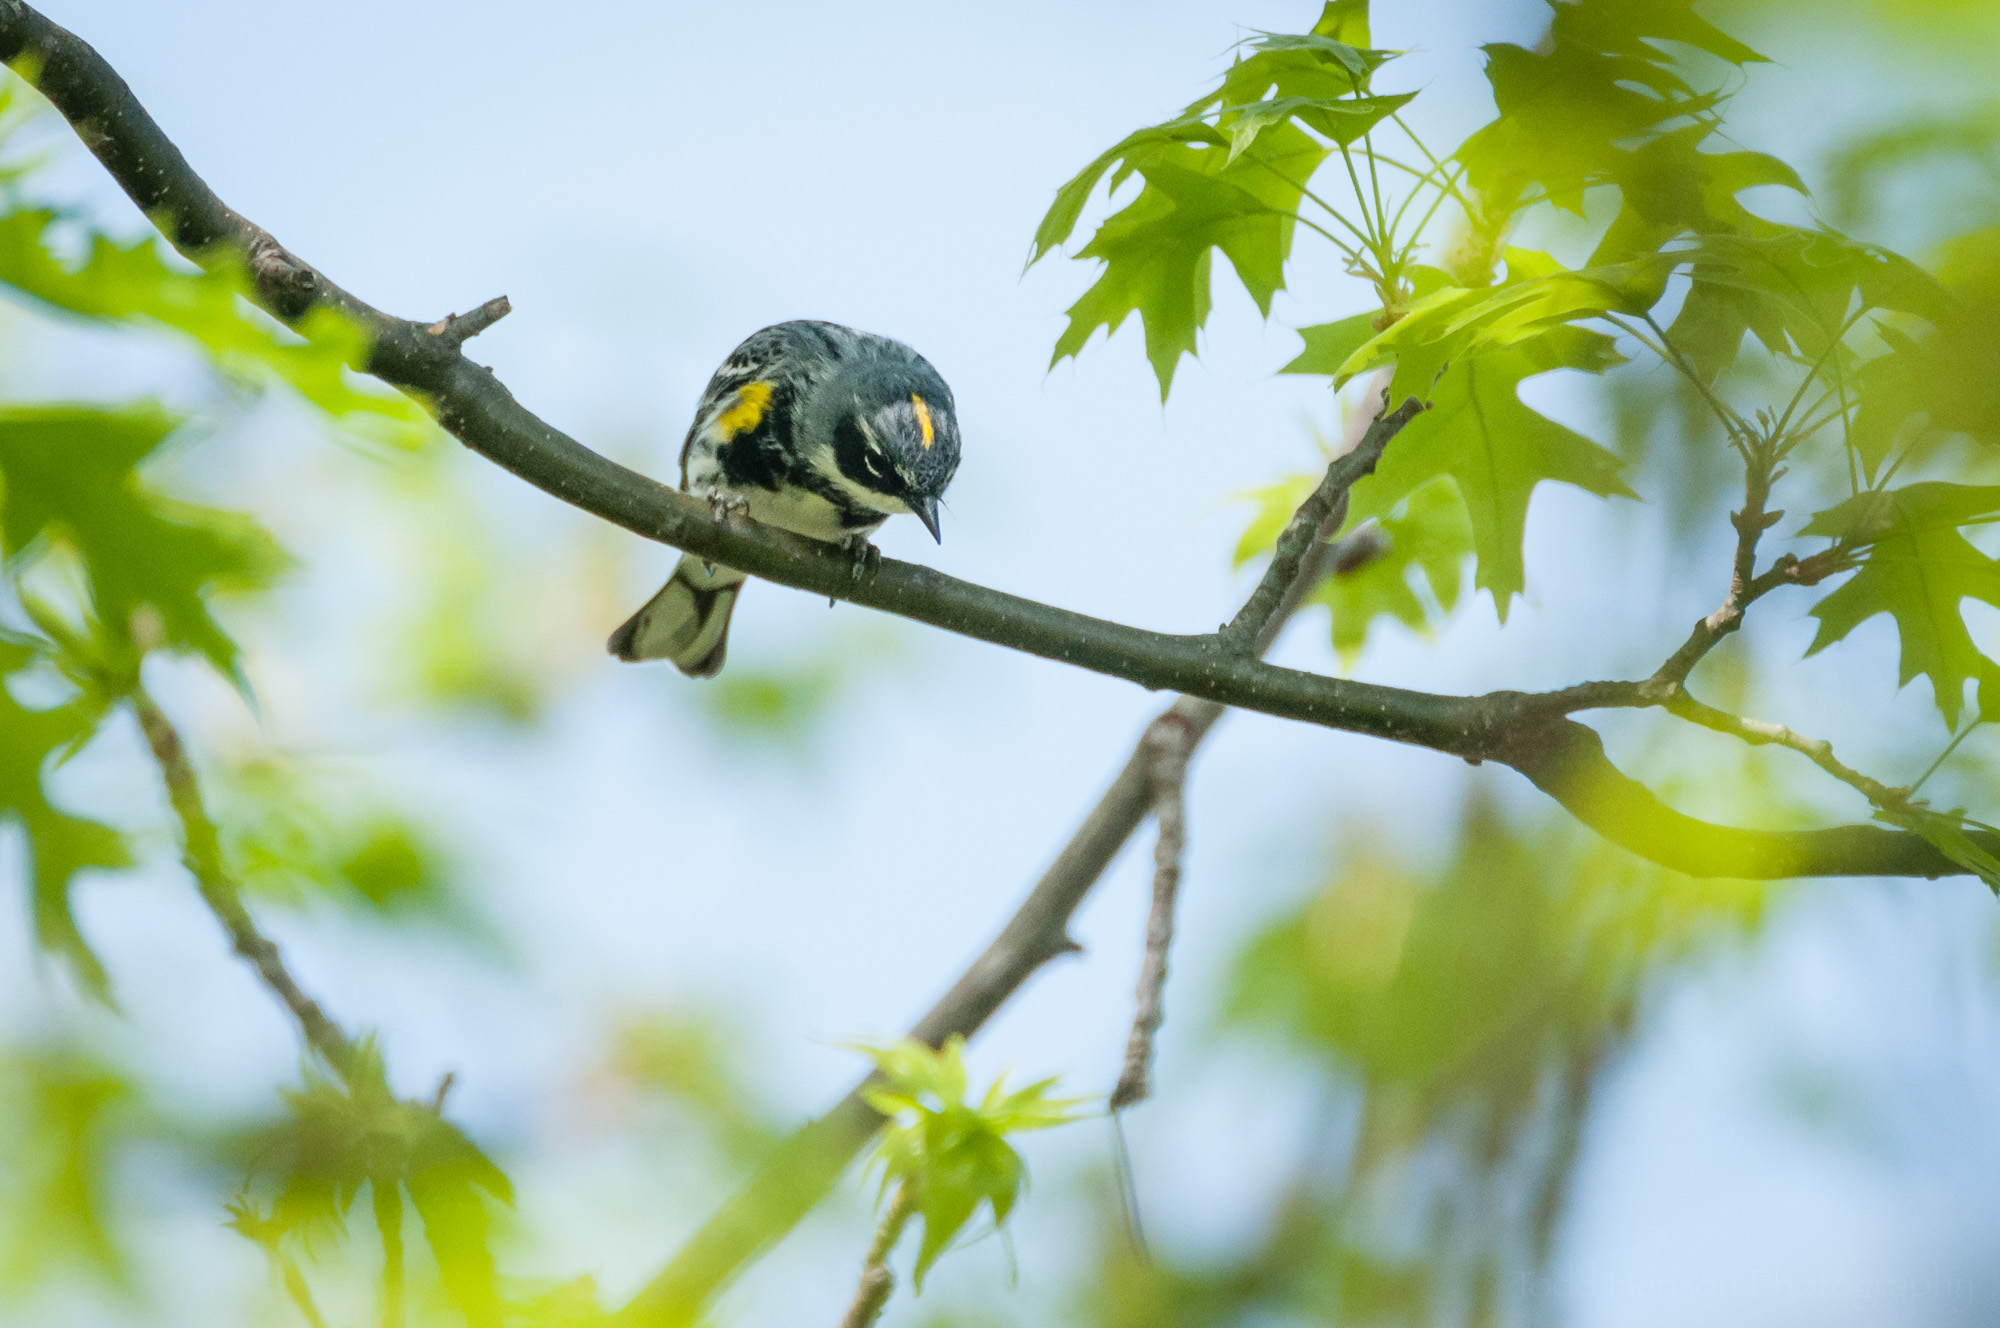 Yellow-rumped Warbler looking down, showing off the yellow stripe on top of its head.